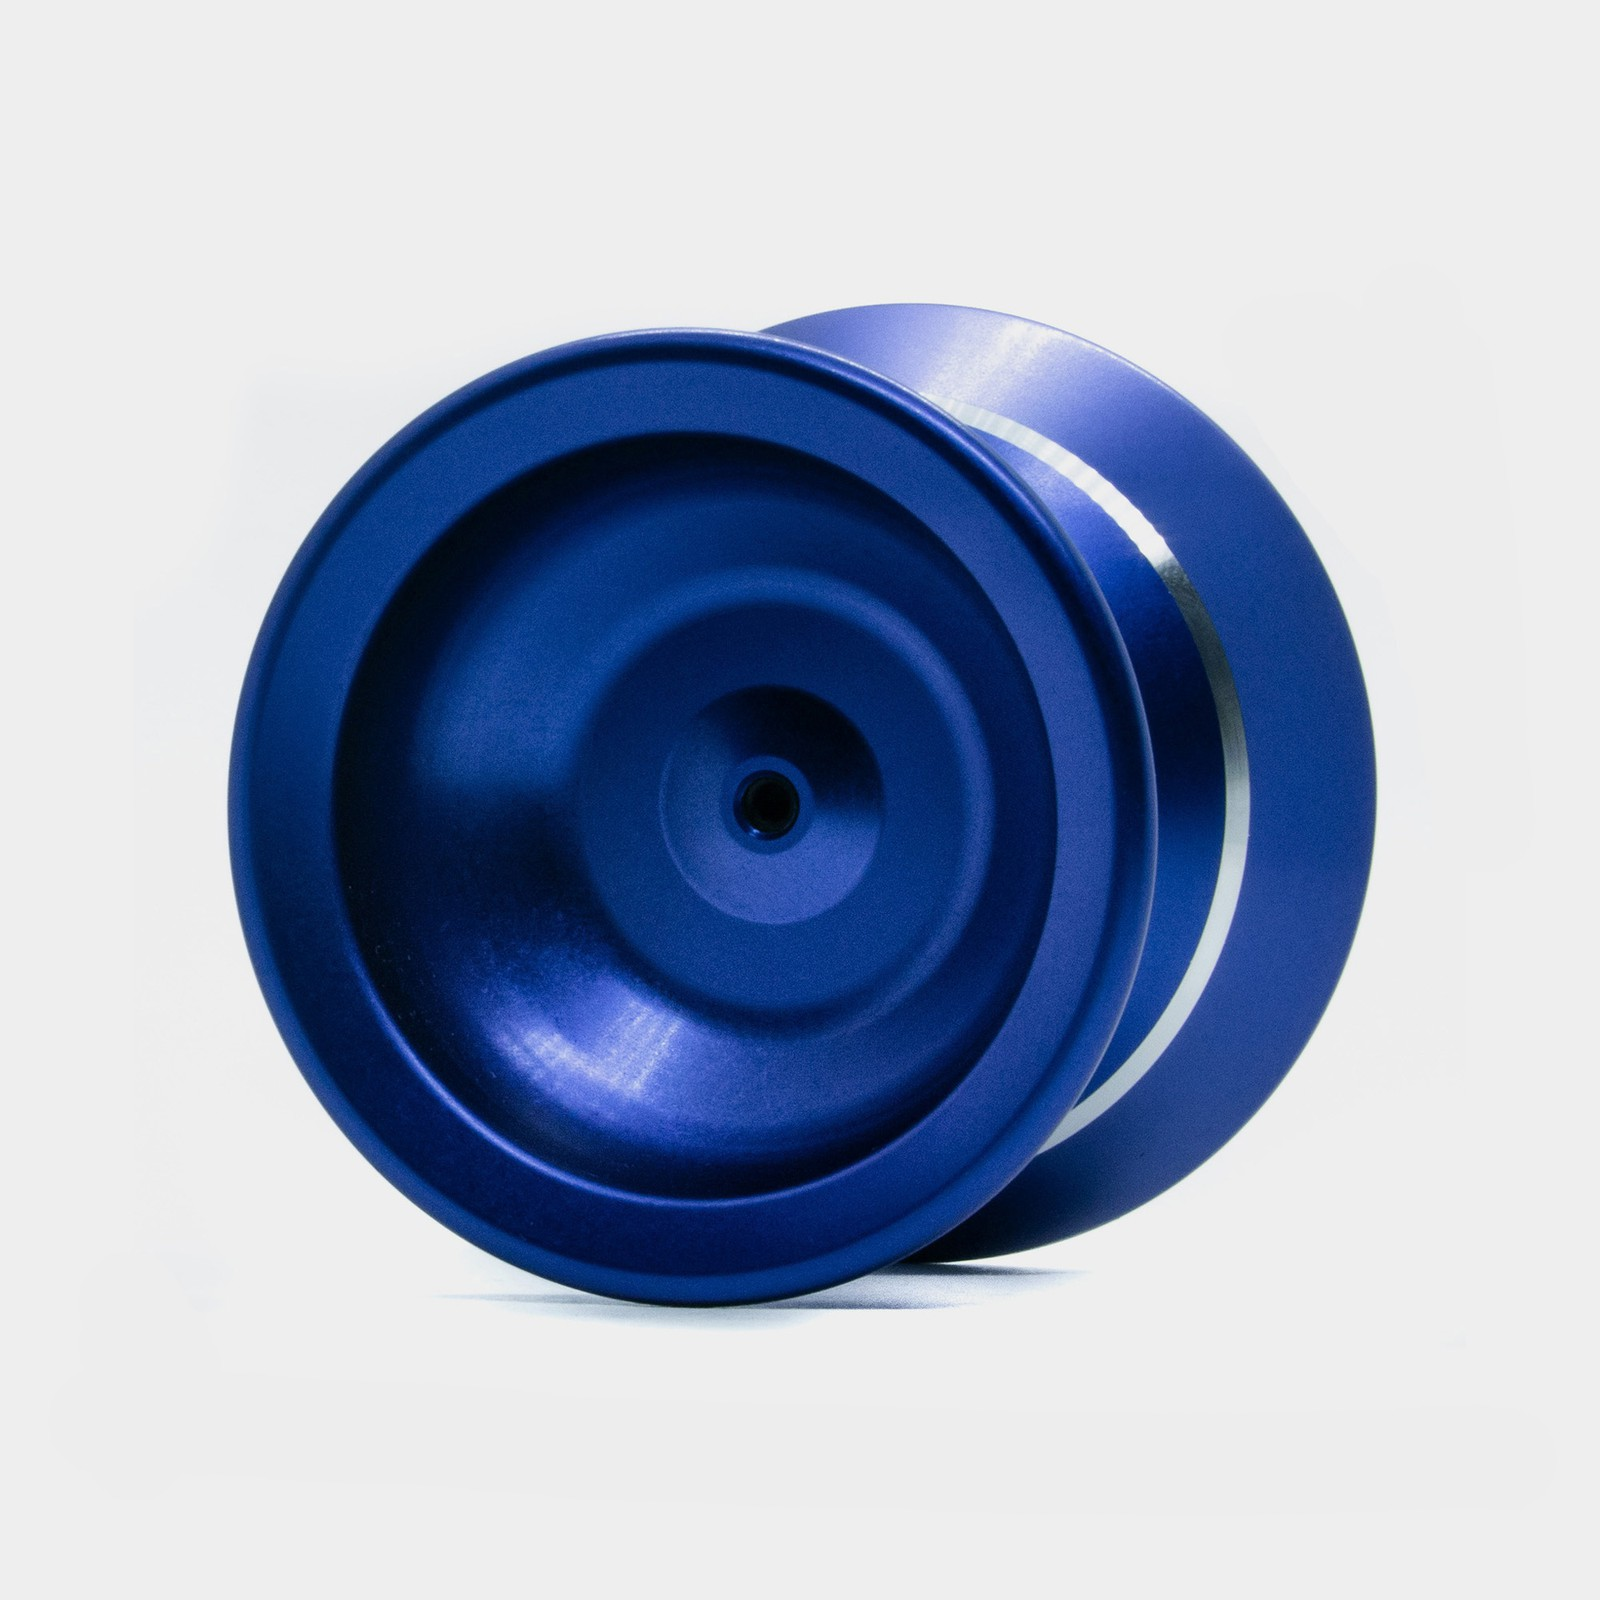 Format:C yo-yo in Blue by One Drop YoYos